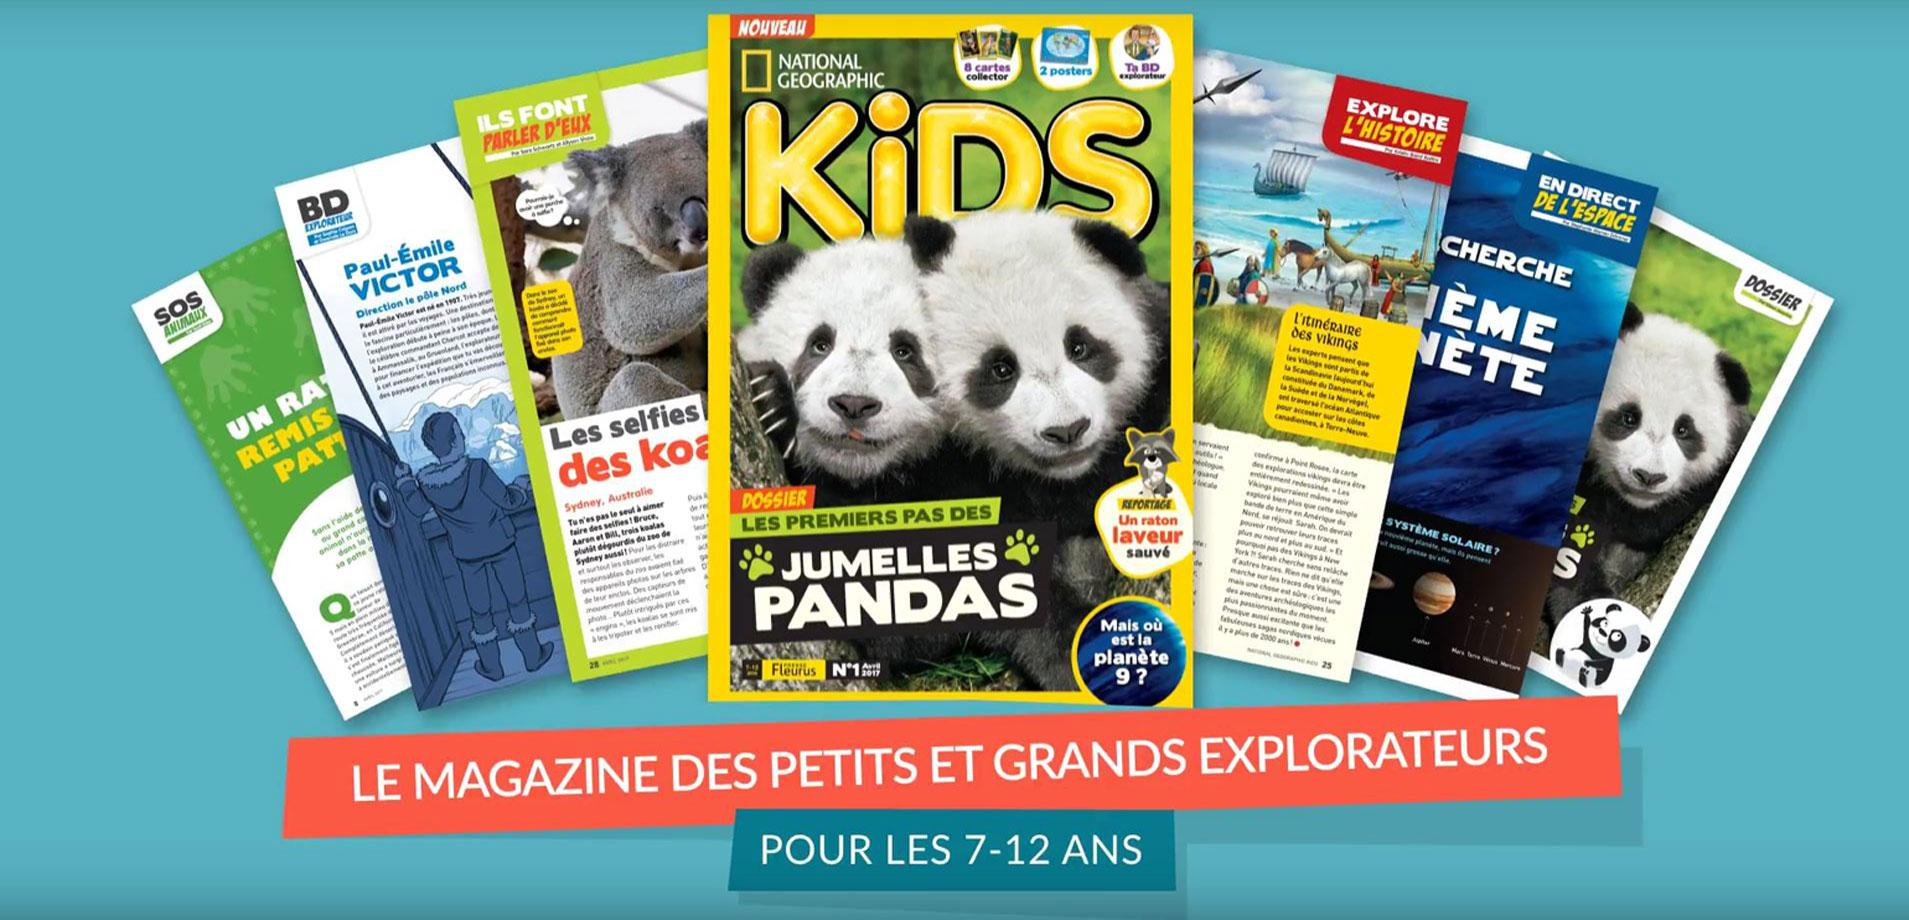 National-Geographic-Kids-arrive-en-France-santecool